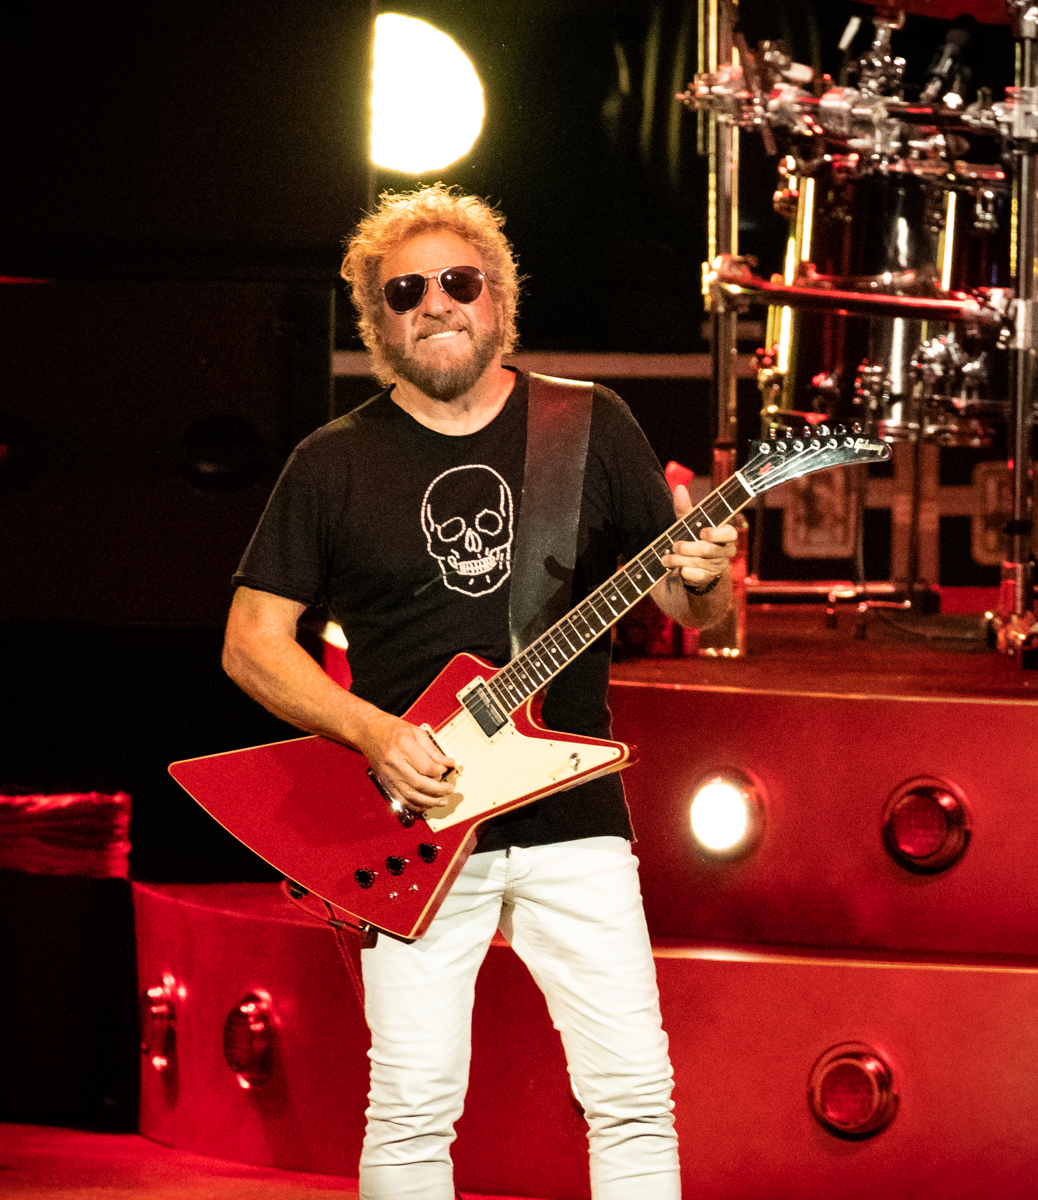 Sammy Hagar of The Circle performs at Hollywood Casino Amphitheatre in Tinley Park, IL on 06/07/2019.